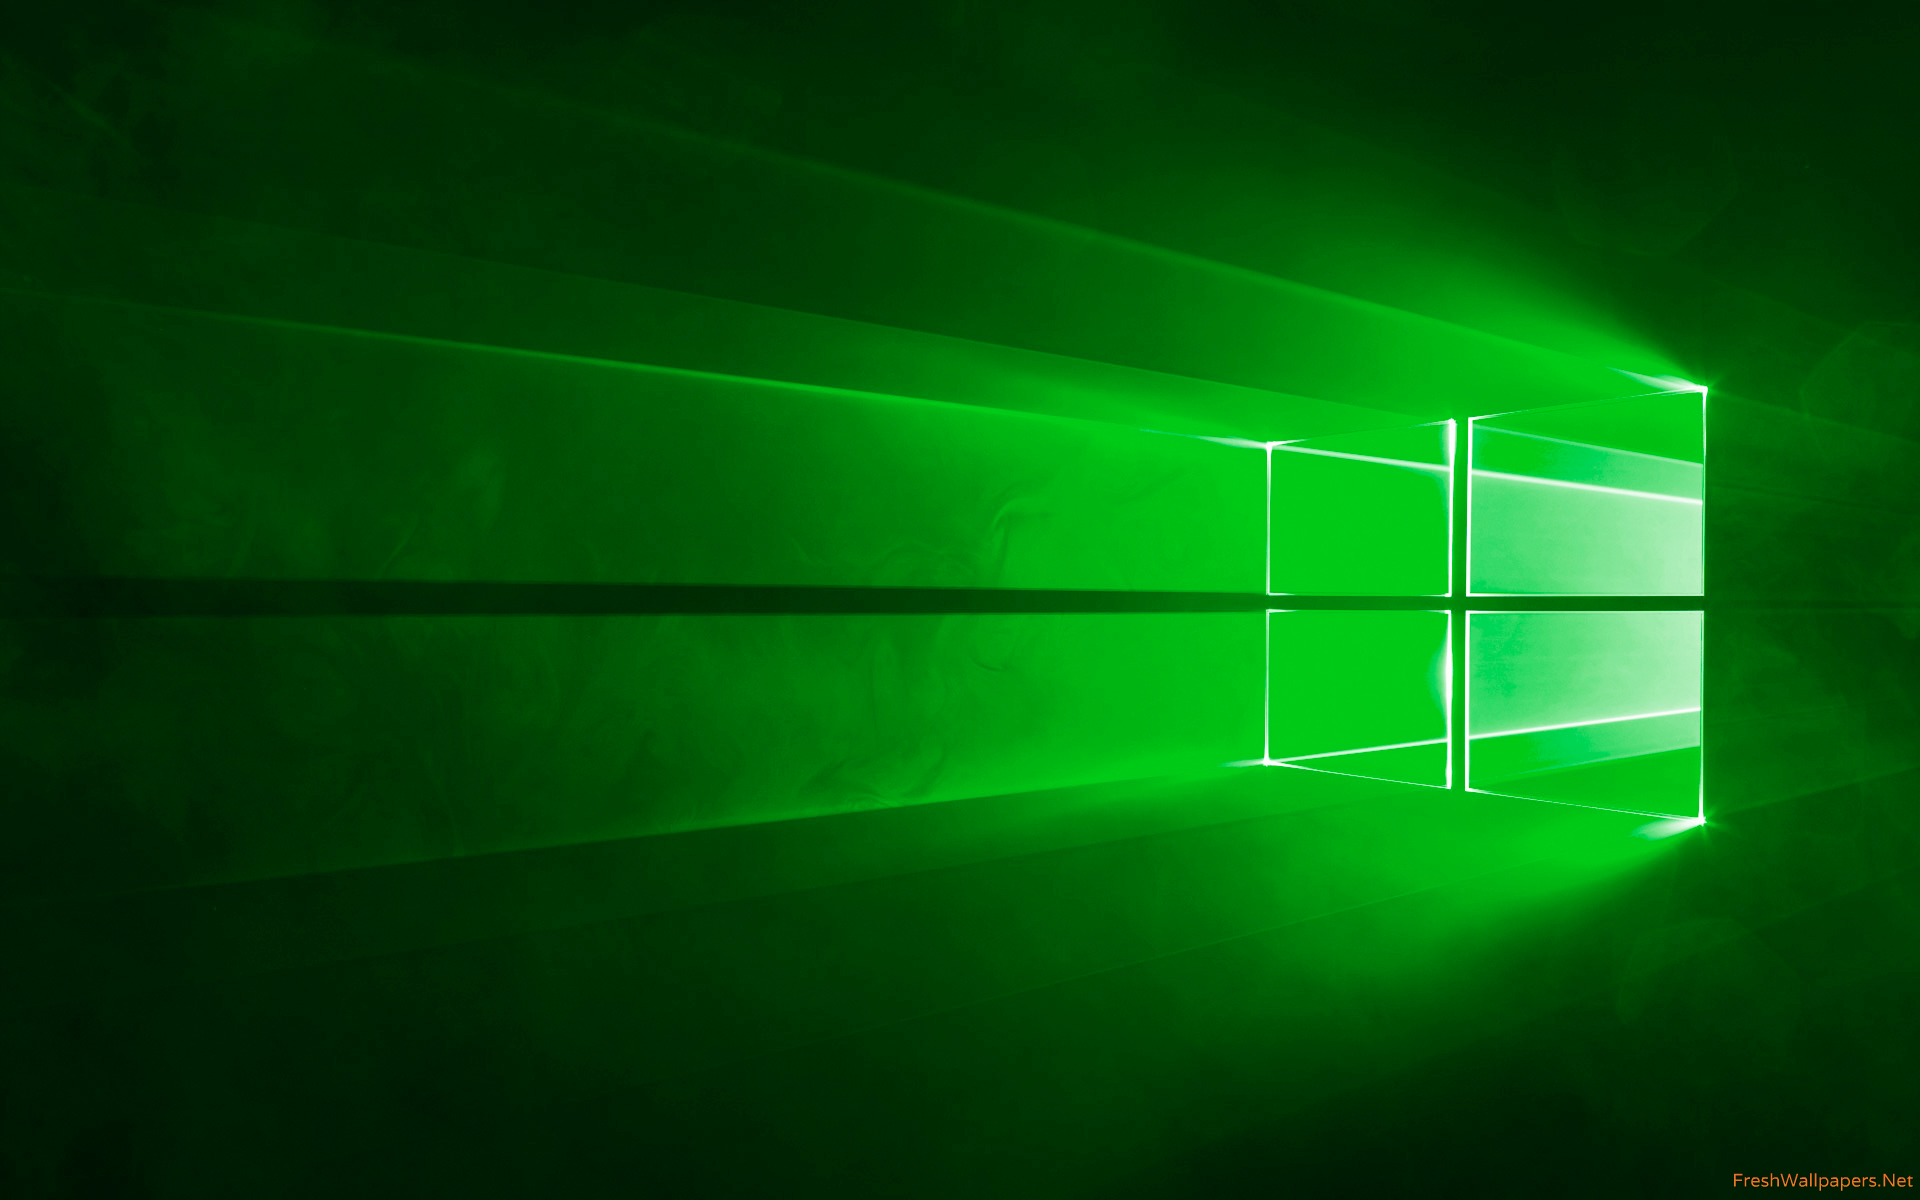 Windows 10 Official Green wallpaper 4k